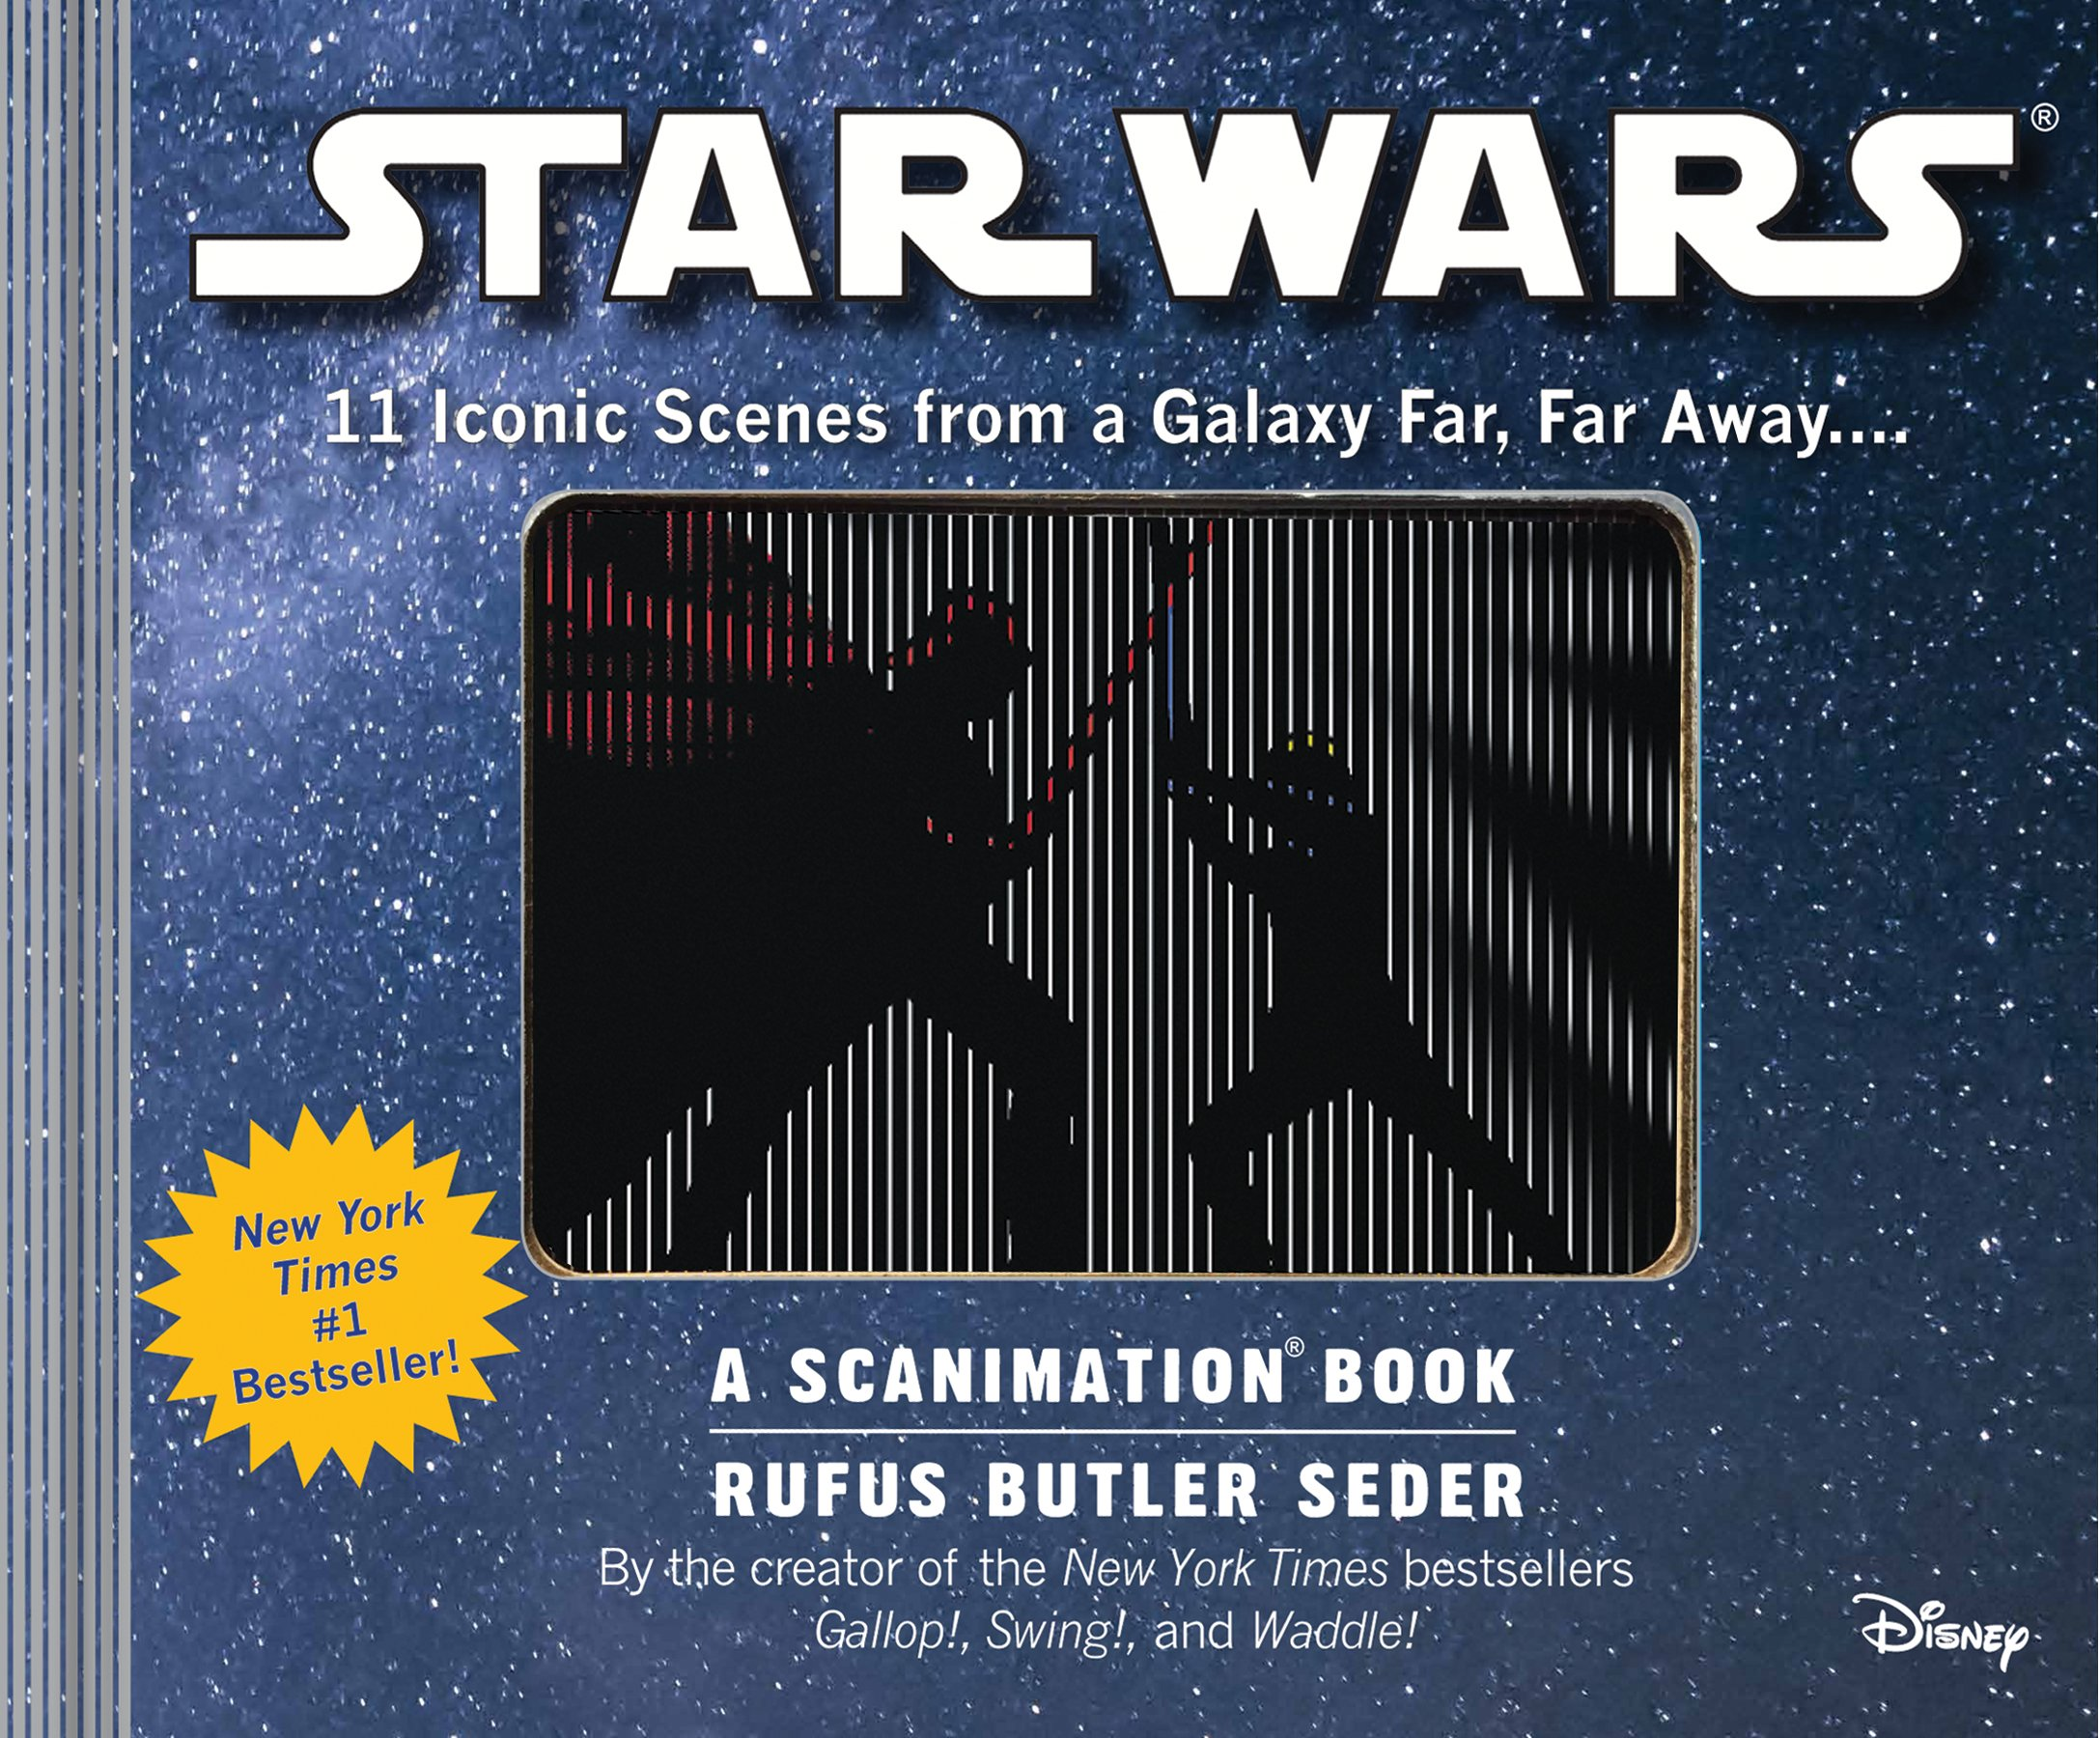 star-wars-a-scanimation-book-iconic-scenes-from-a-galaxy-far-far-away